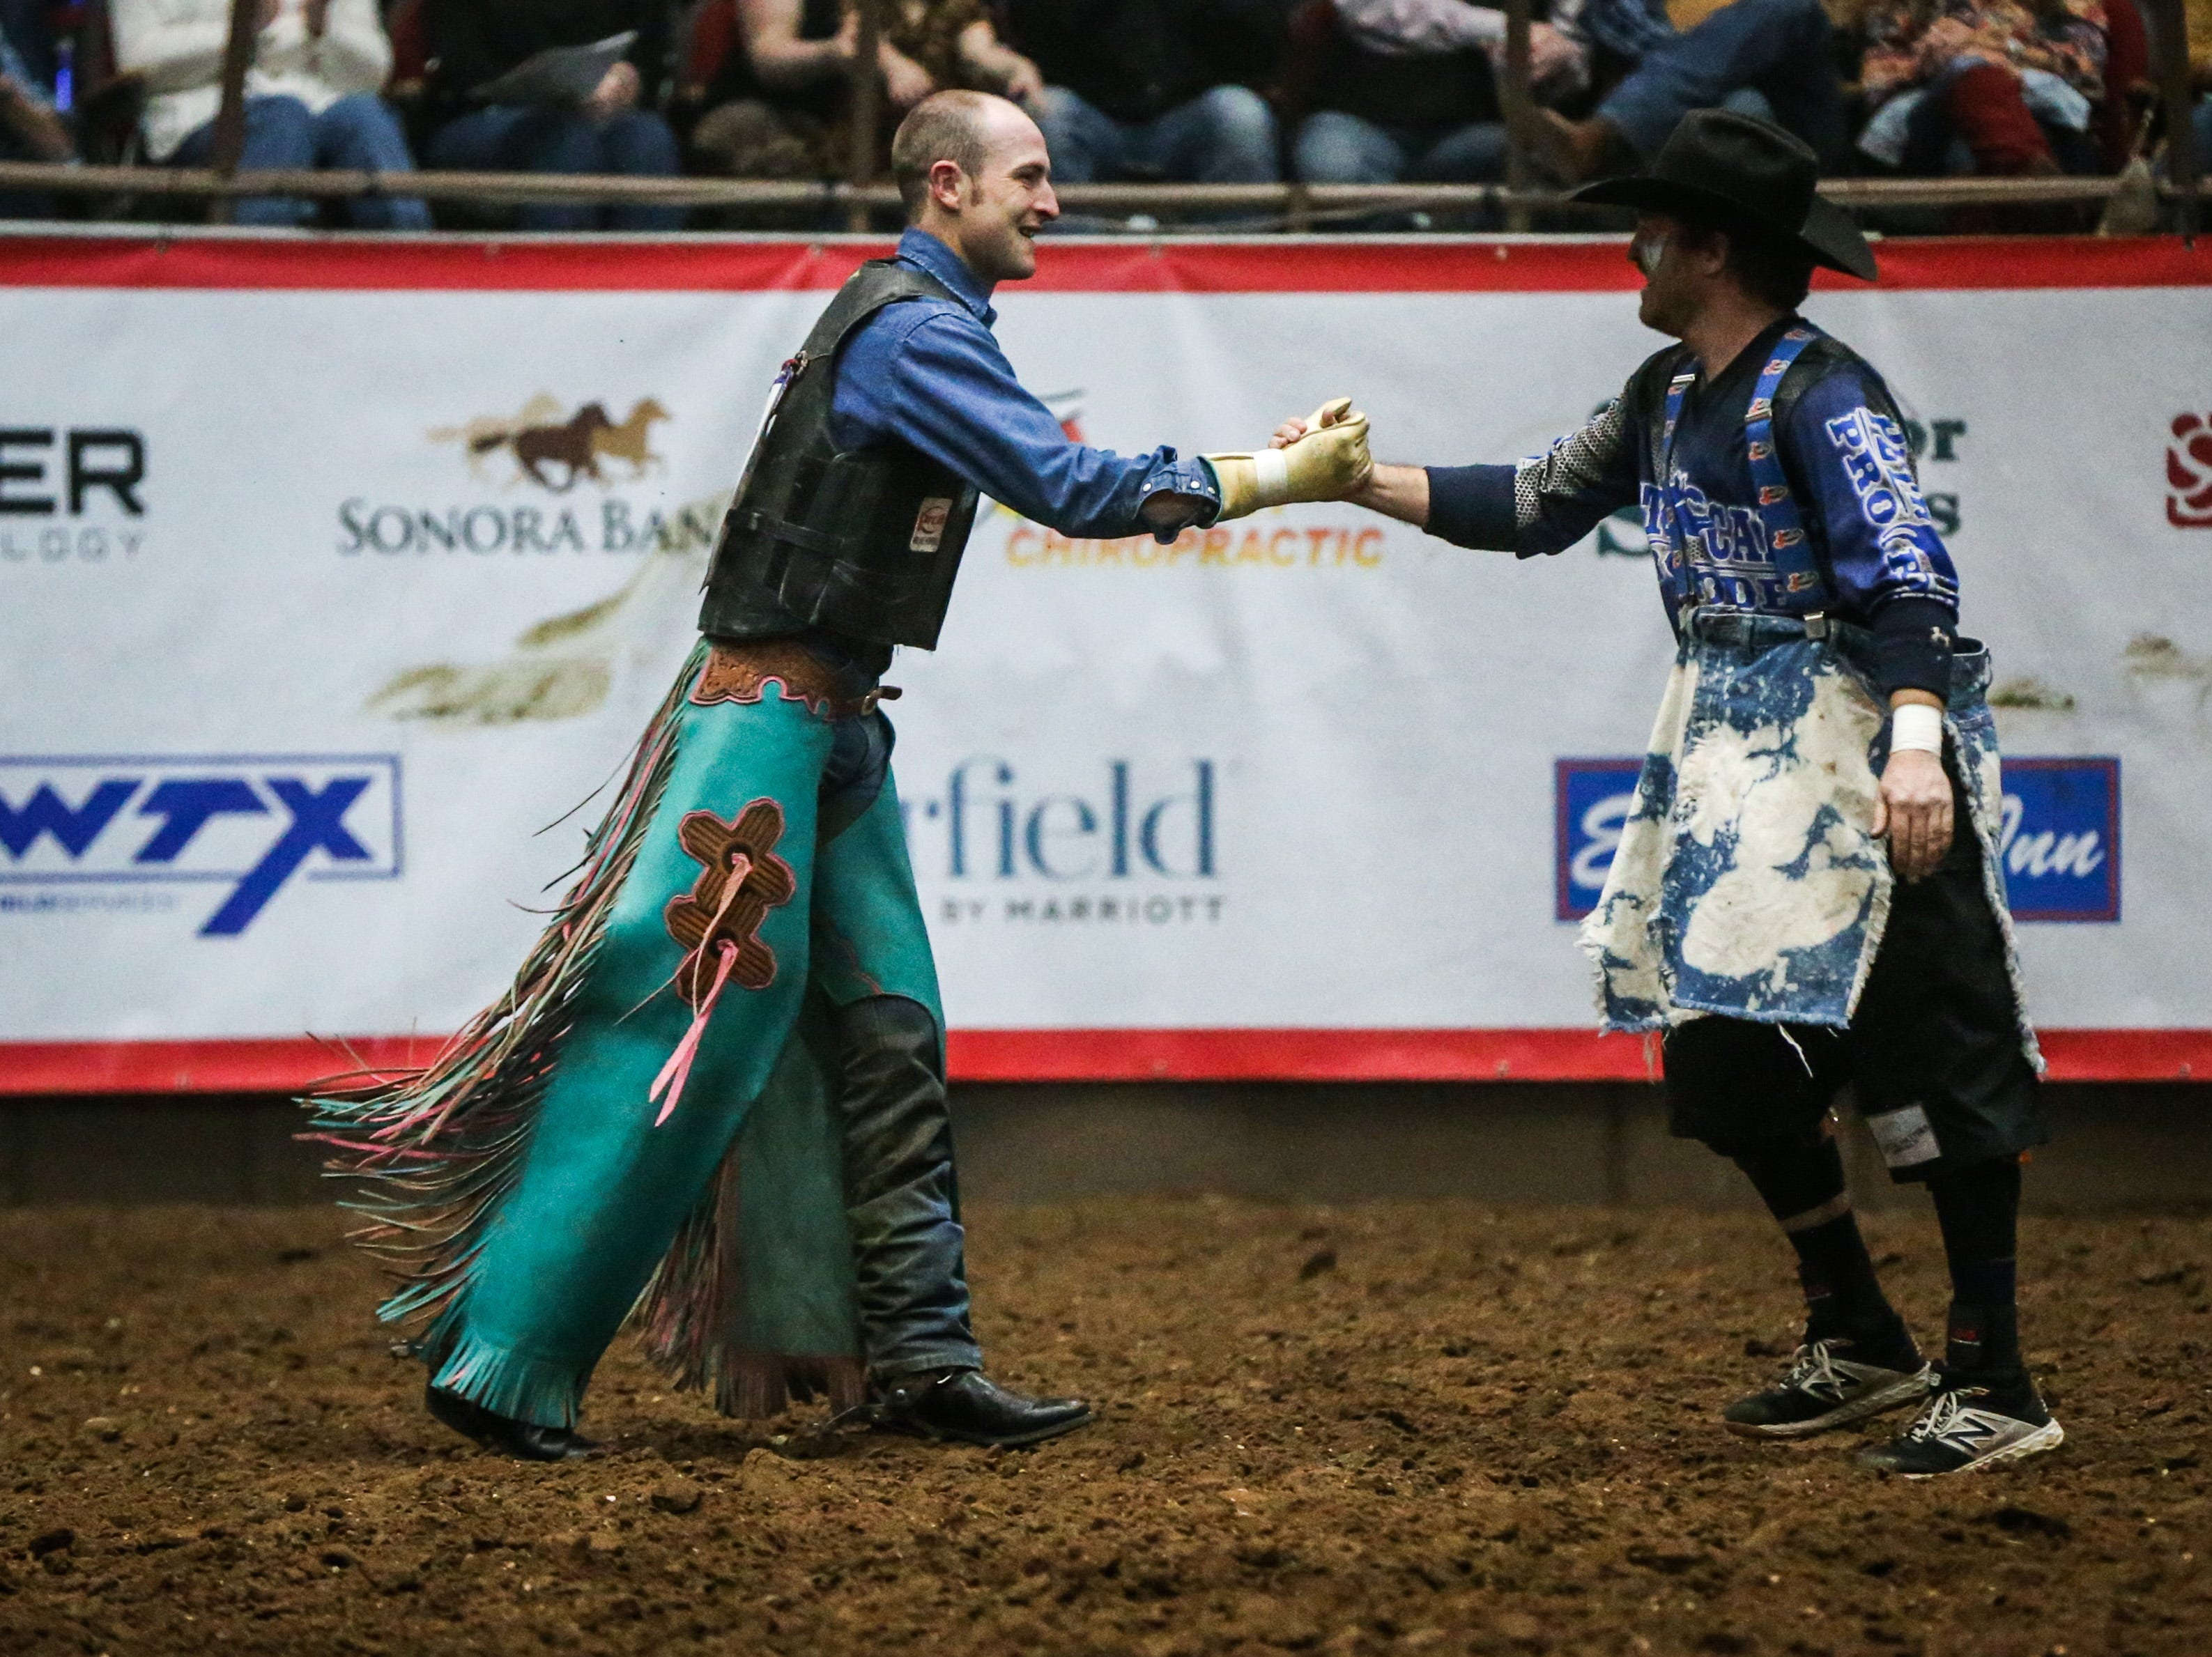 Lon Danley celebrates his 86.5 point ride on Air Marshal during Cinch Chute Out Saturday, Feb. 16, 2019, at Foster Communications Coliseum. Danley was the bull riding champion.